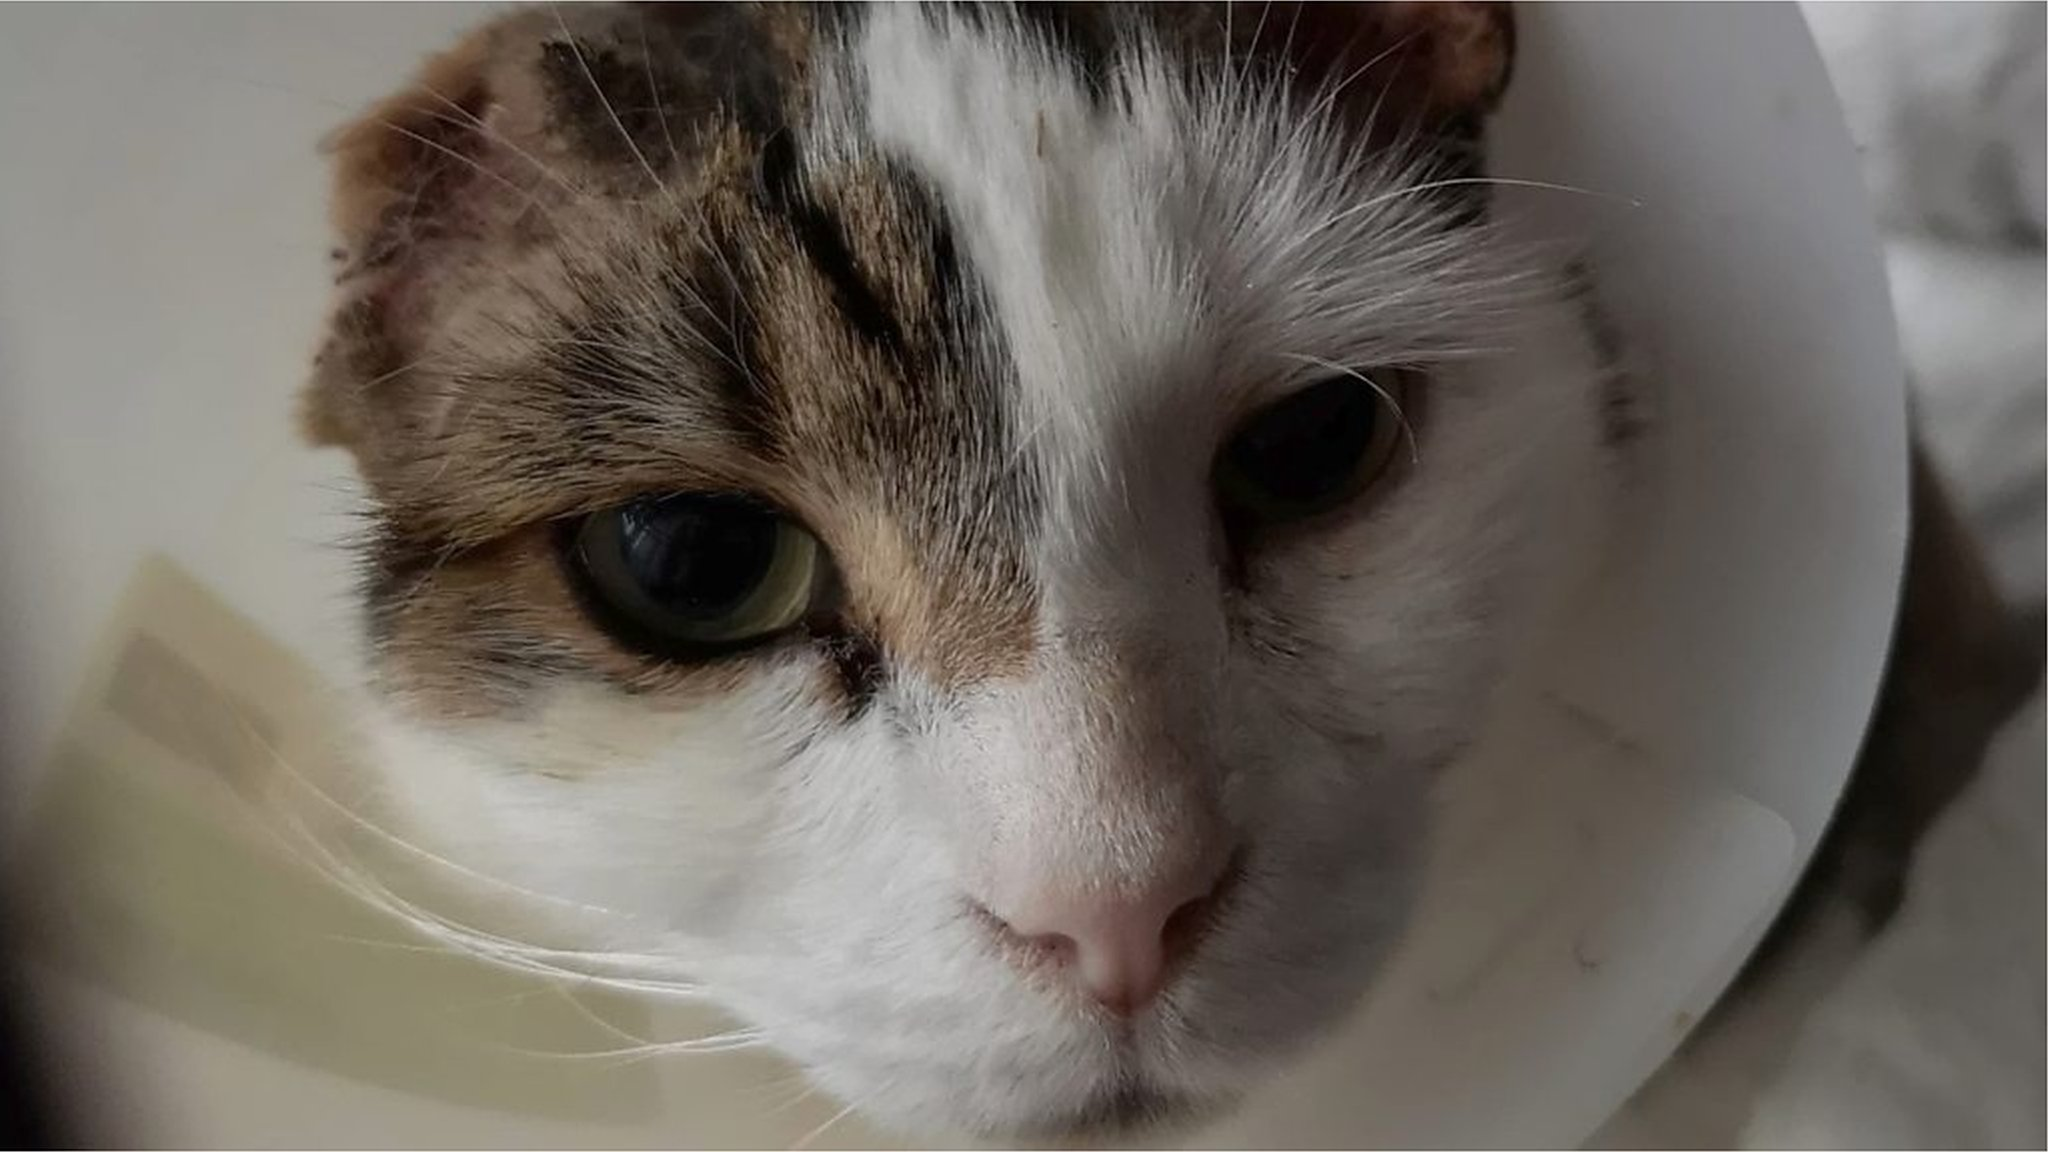 'Amazing' support for cat who lost ears in knife attack